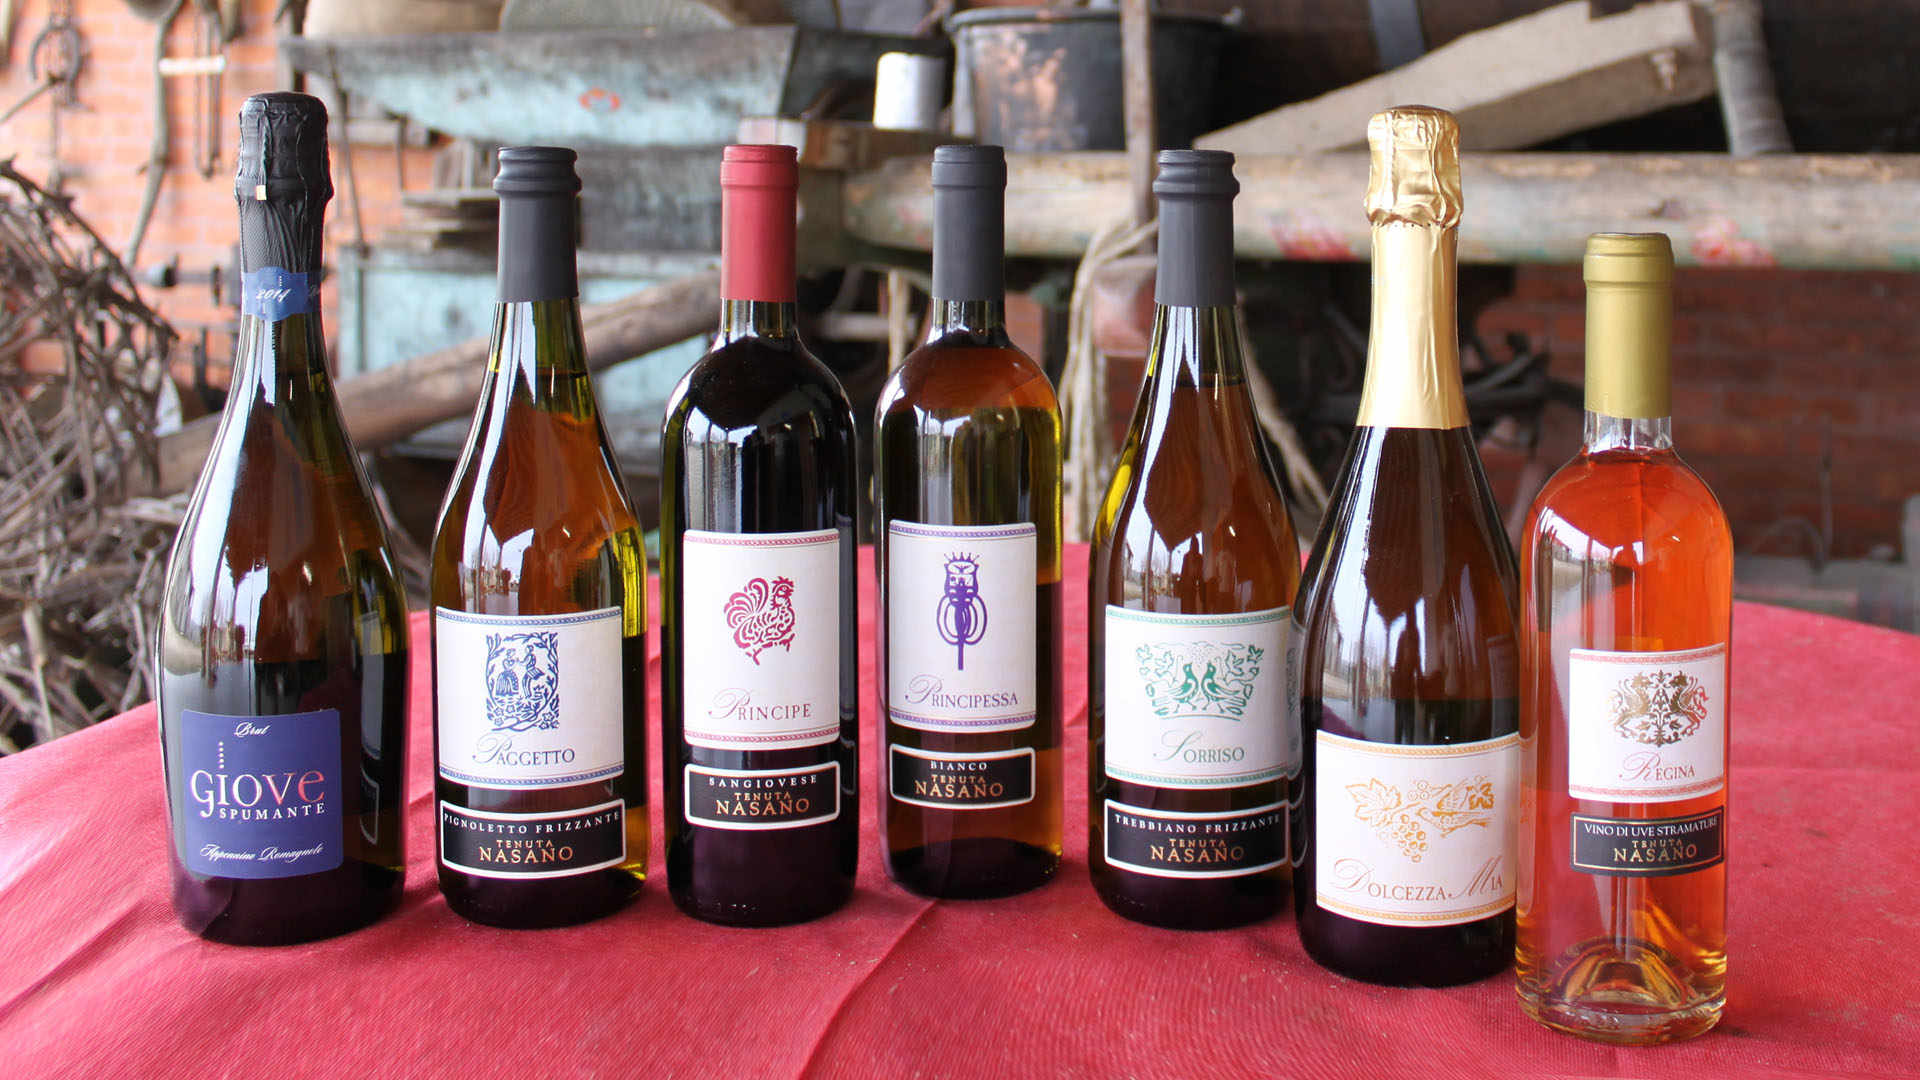 Nasano Farm: Wine and Other Delights